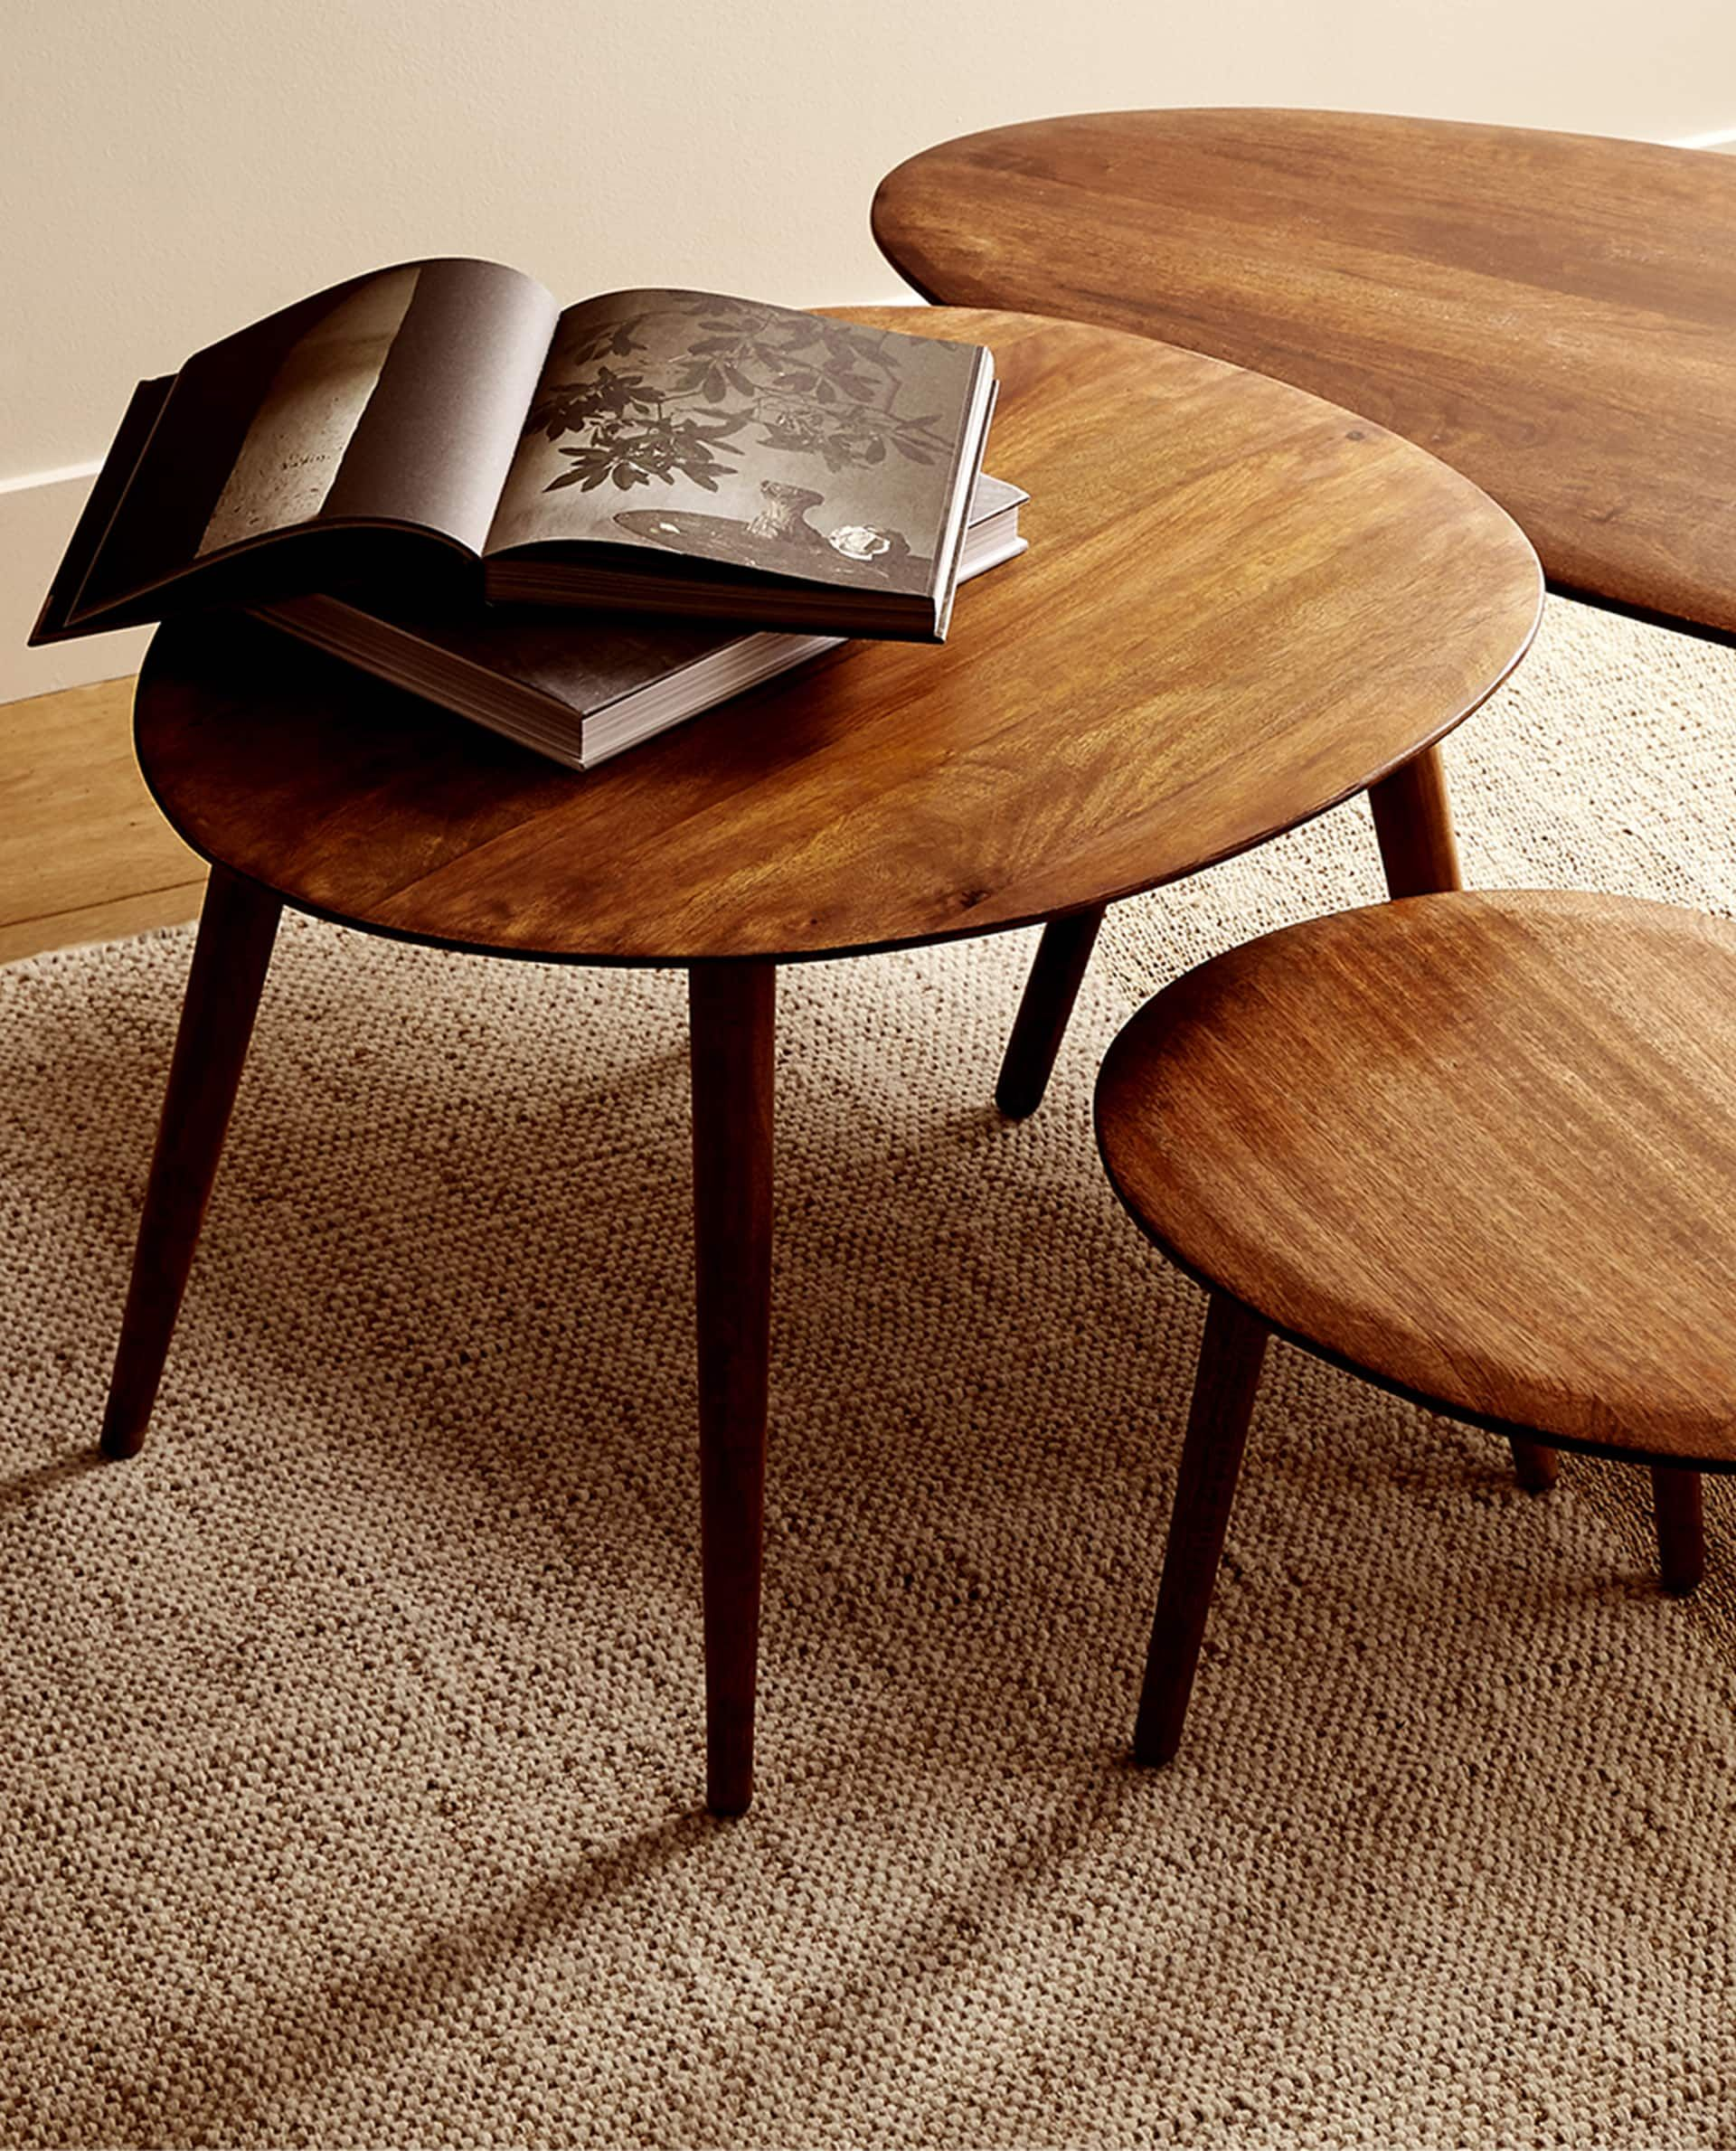 Zara Coffee Tables Coffee Table Wooden Tables Table [ 2379 x 1920 Pixel ]